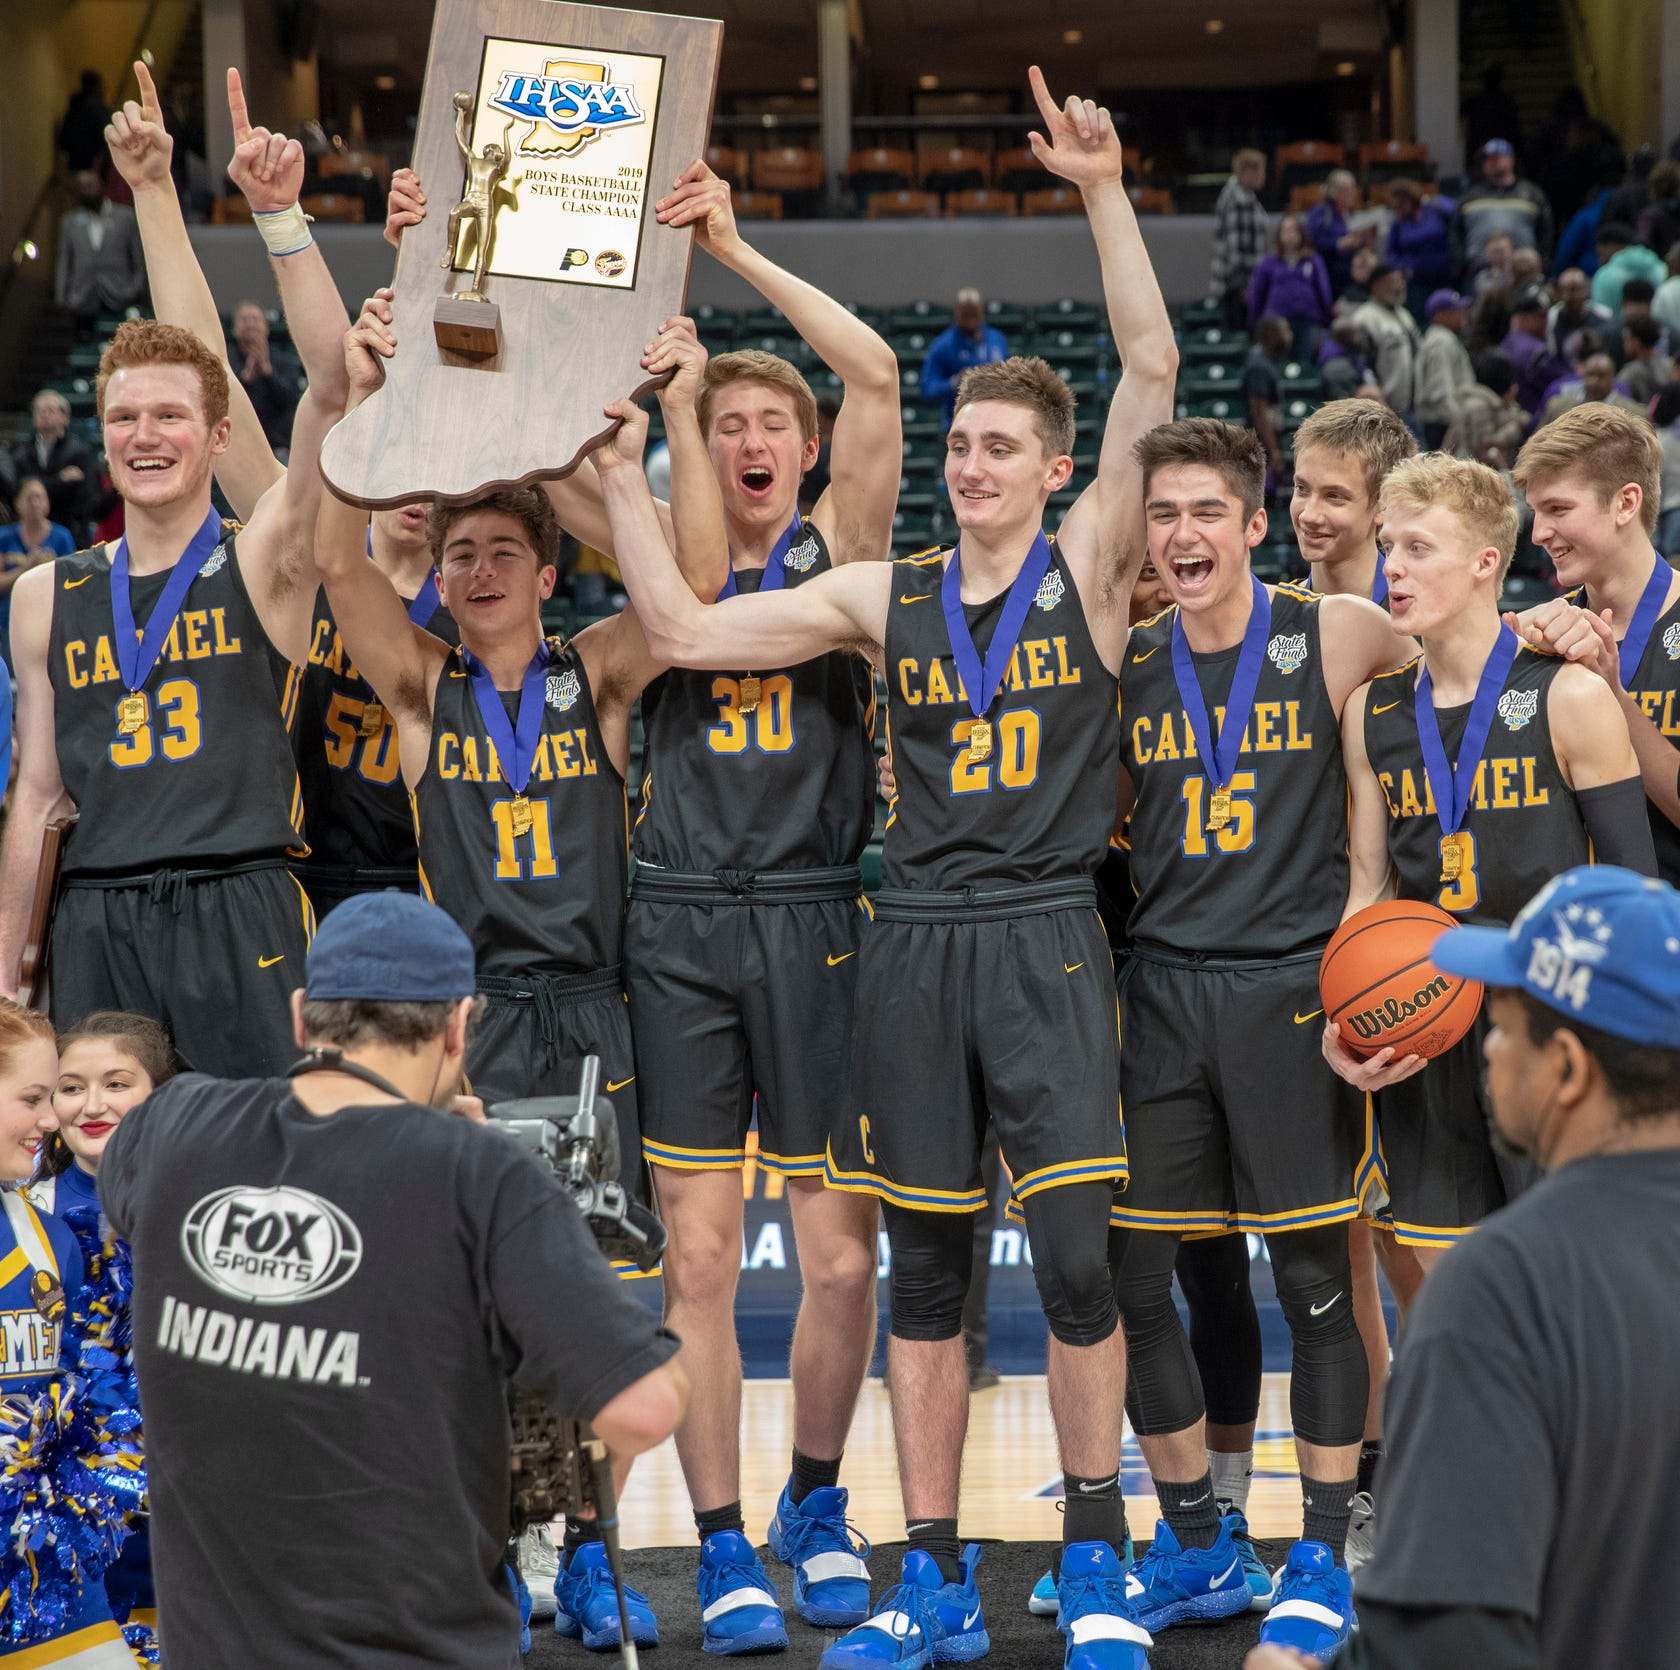 Carmel High School players celebrate post-game, Carmel vs. Ben Davis in the Class 4A Boys Basketball State Final, Bankers Life Fieldhouse, Indianapolis, Saturday, March 23, 2019. Carmel won 60-55.